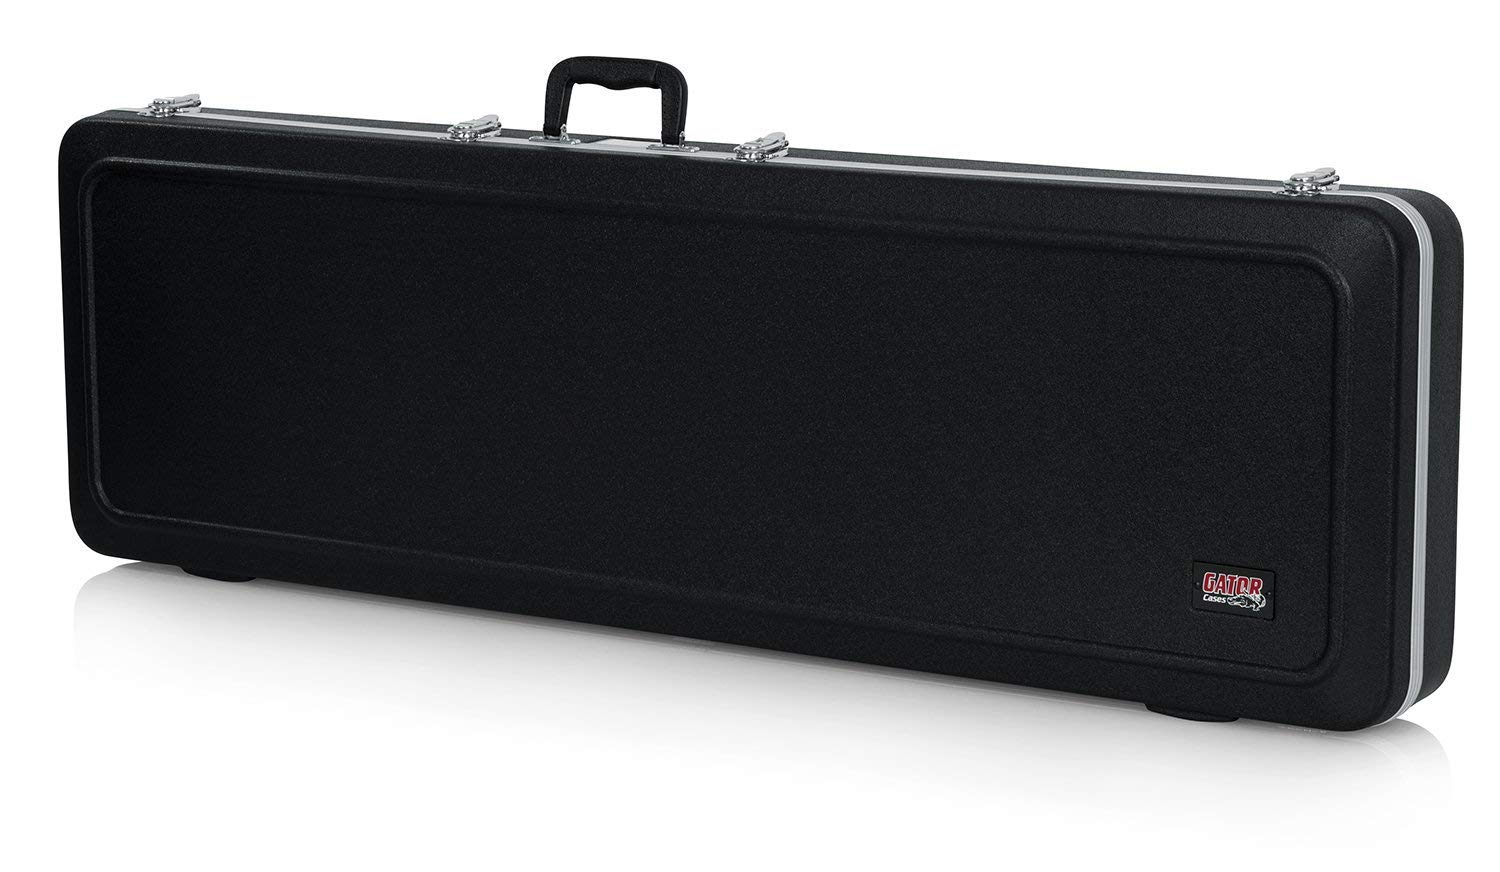 Gator Cases Deluxe ABS Molded Case for Bass Guitars; Fits Precision and Jazz Style Bass Guitars (GC-BASS) (Renewed)